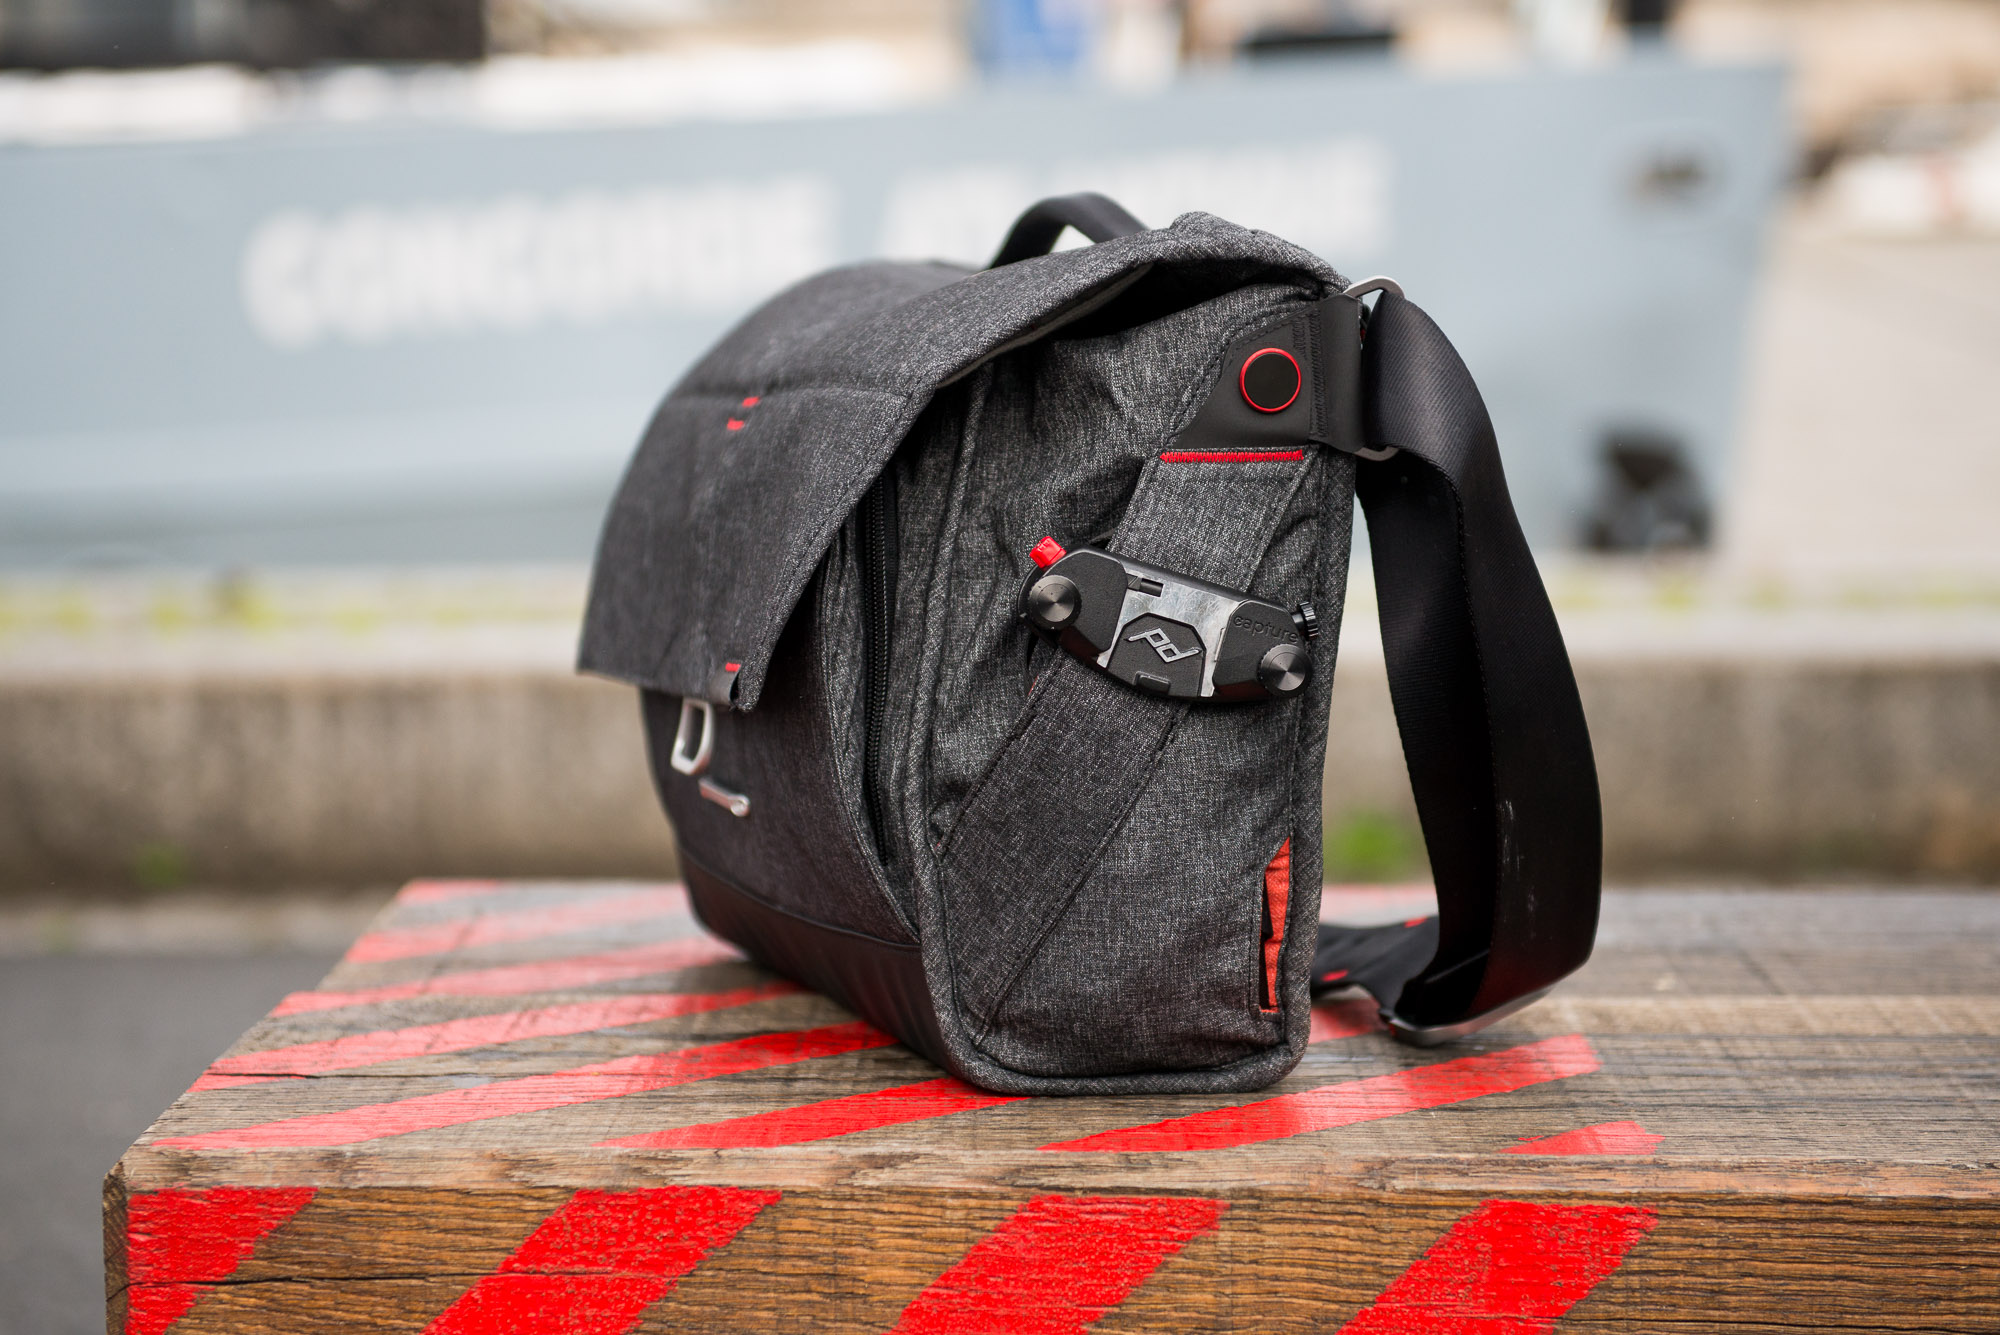 Test du sac photo The Everyday Messenger de Peak Design